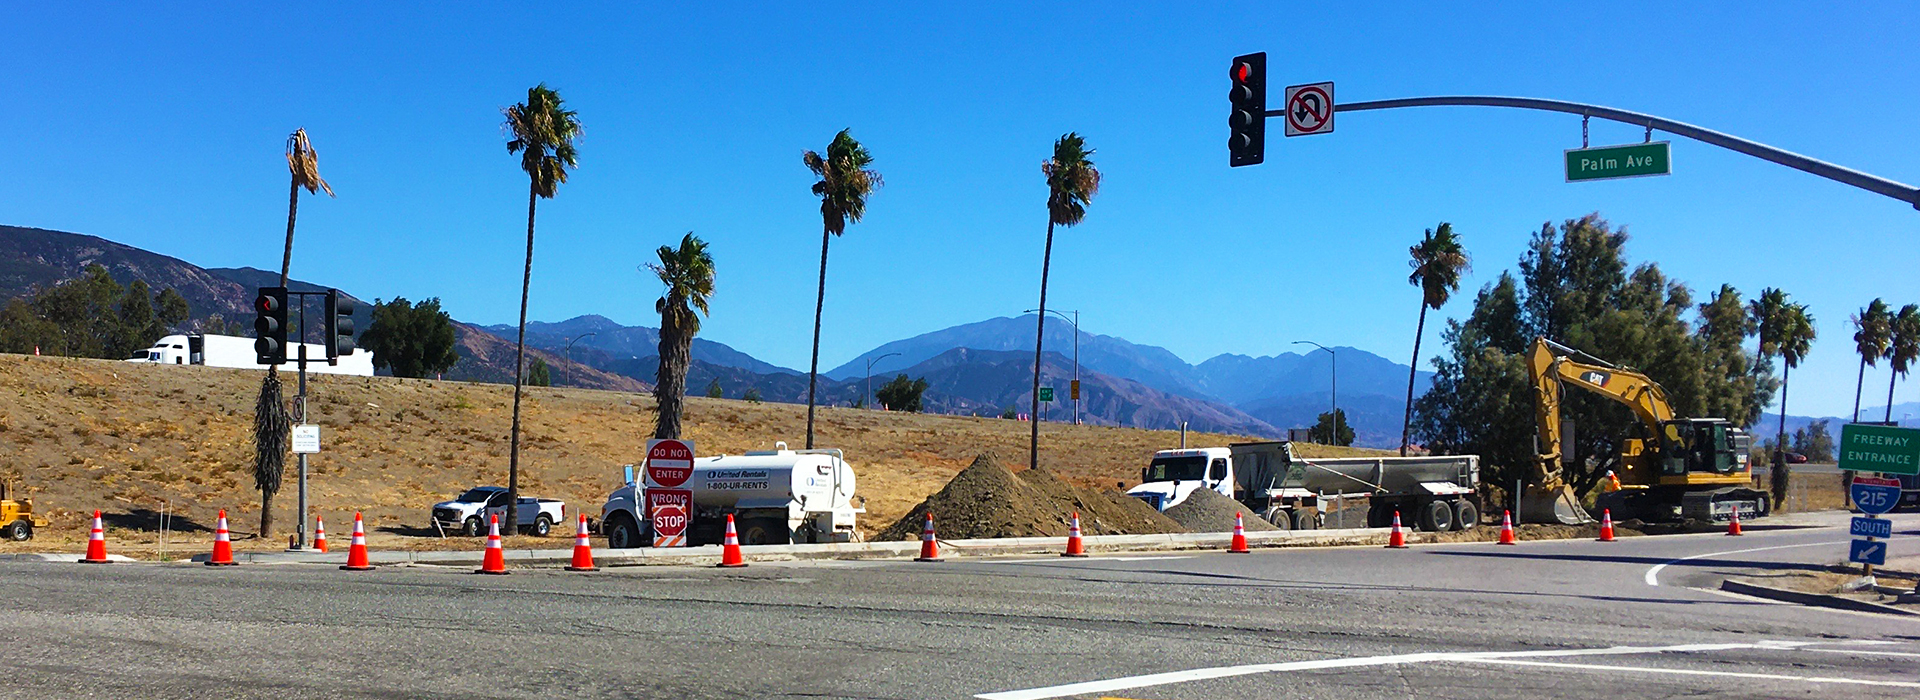 Caltrans closes I-215 southbound Palm Avenue offramp; alternate routes advised